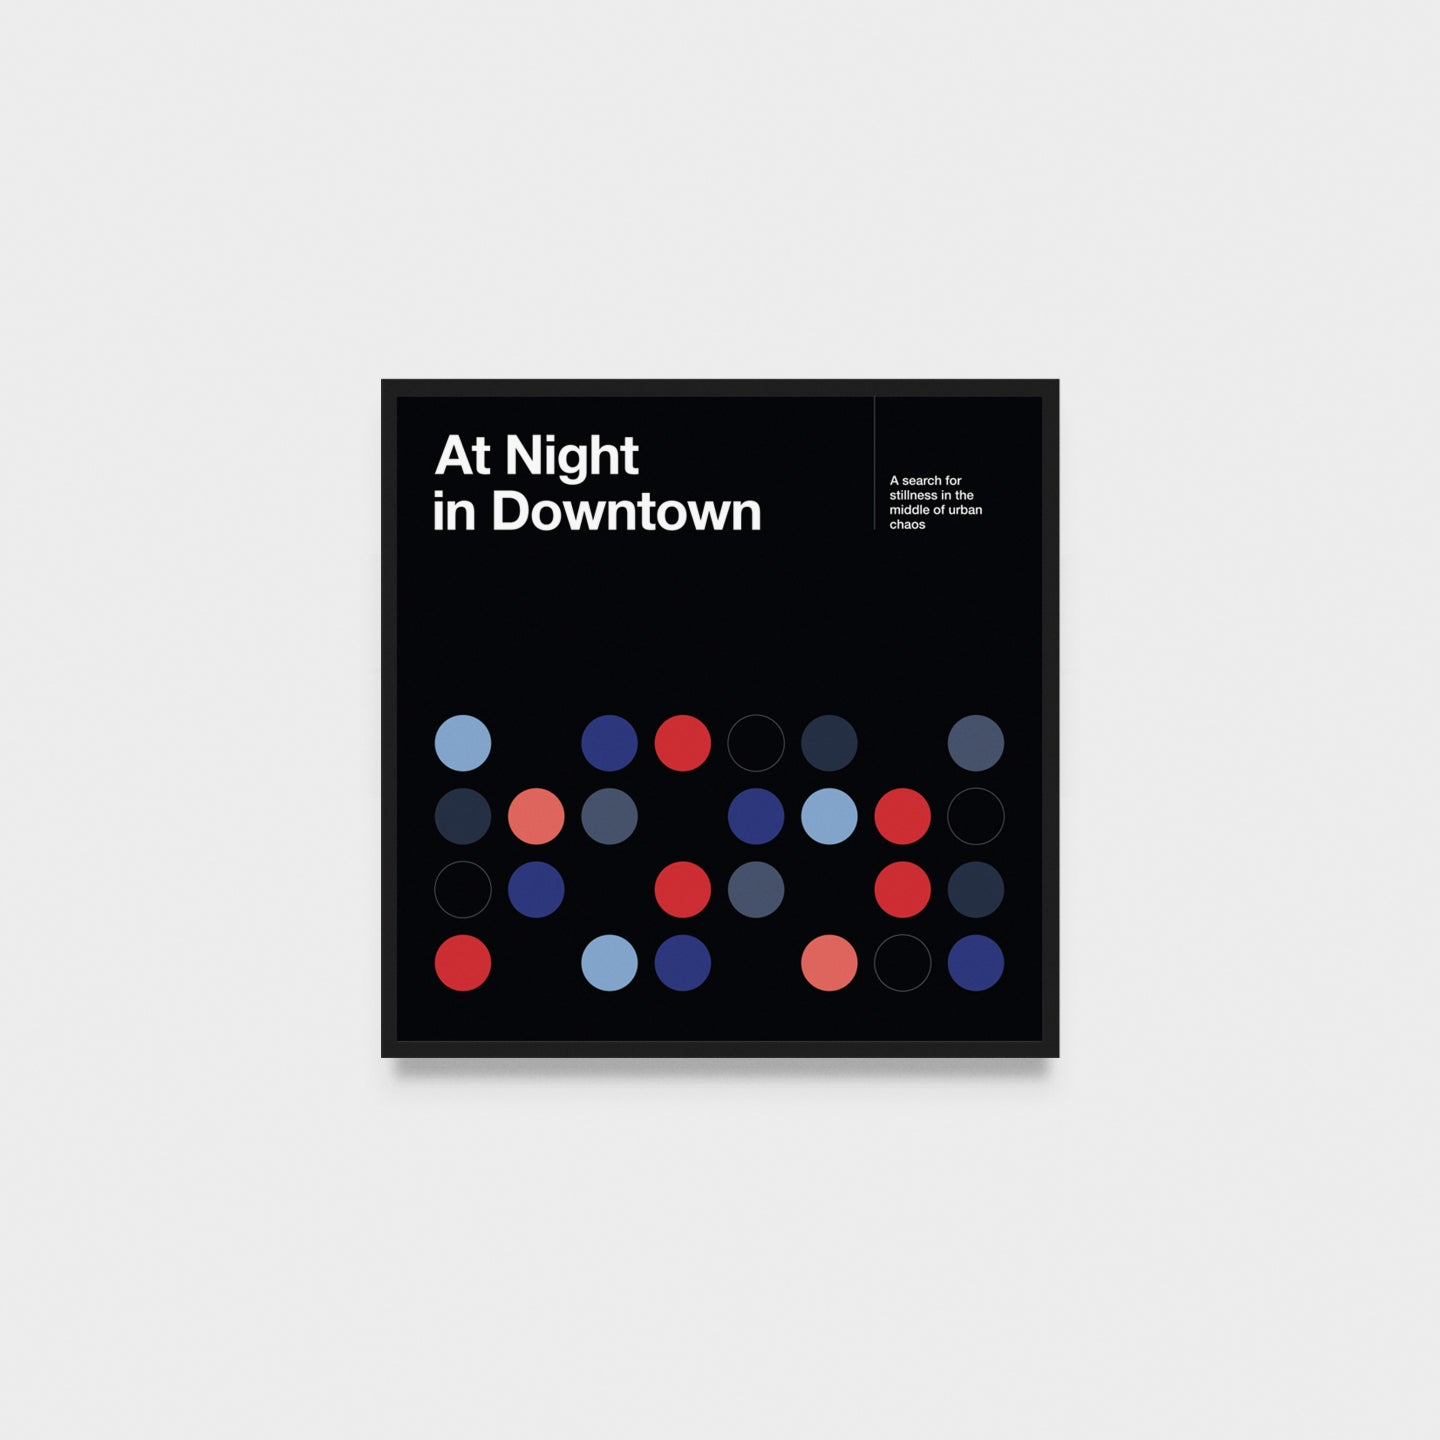 At Night in Downtown art print 50 x 50 cm